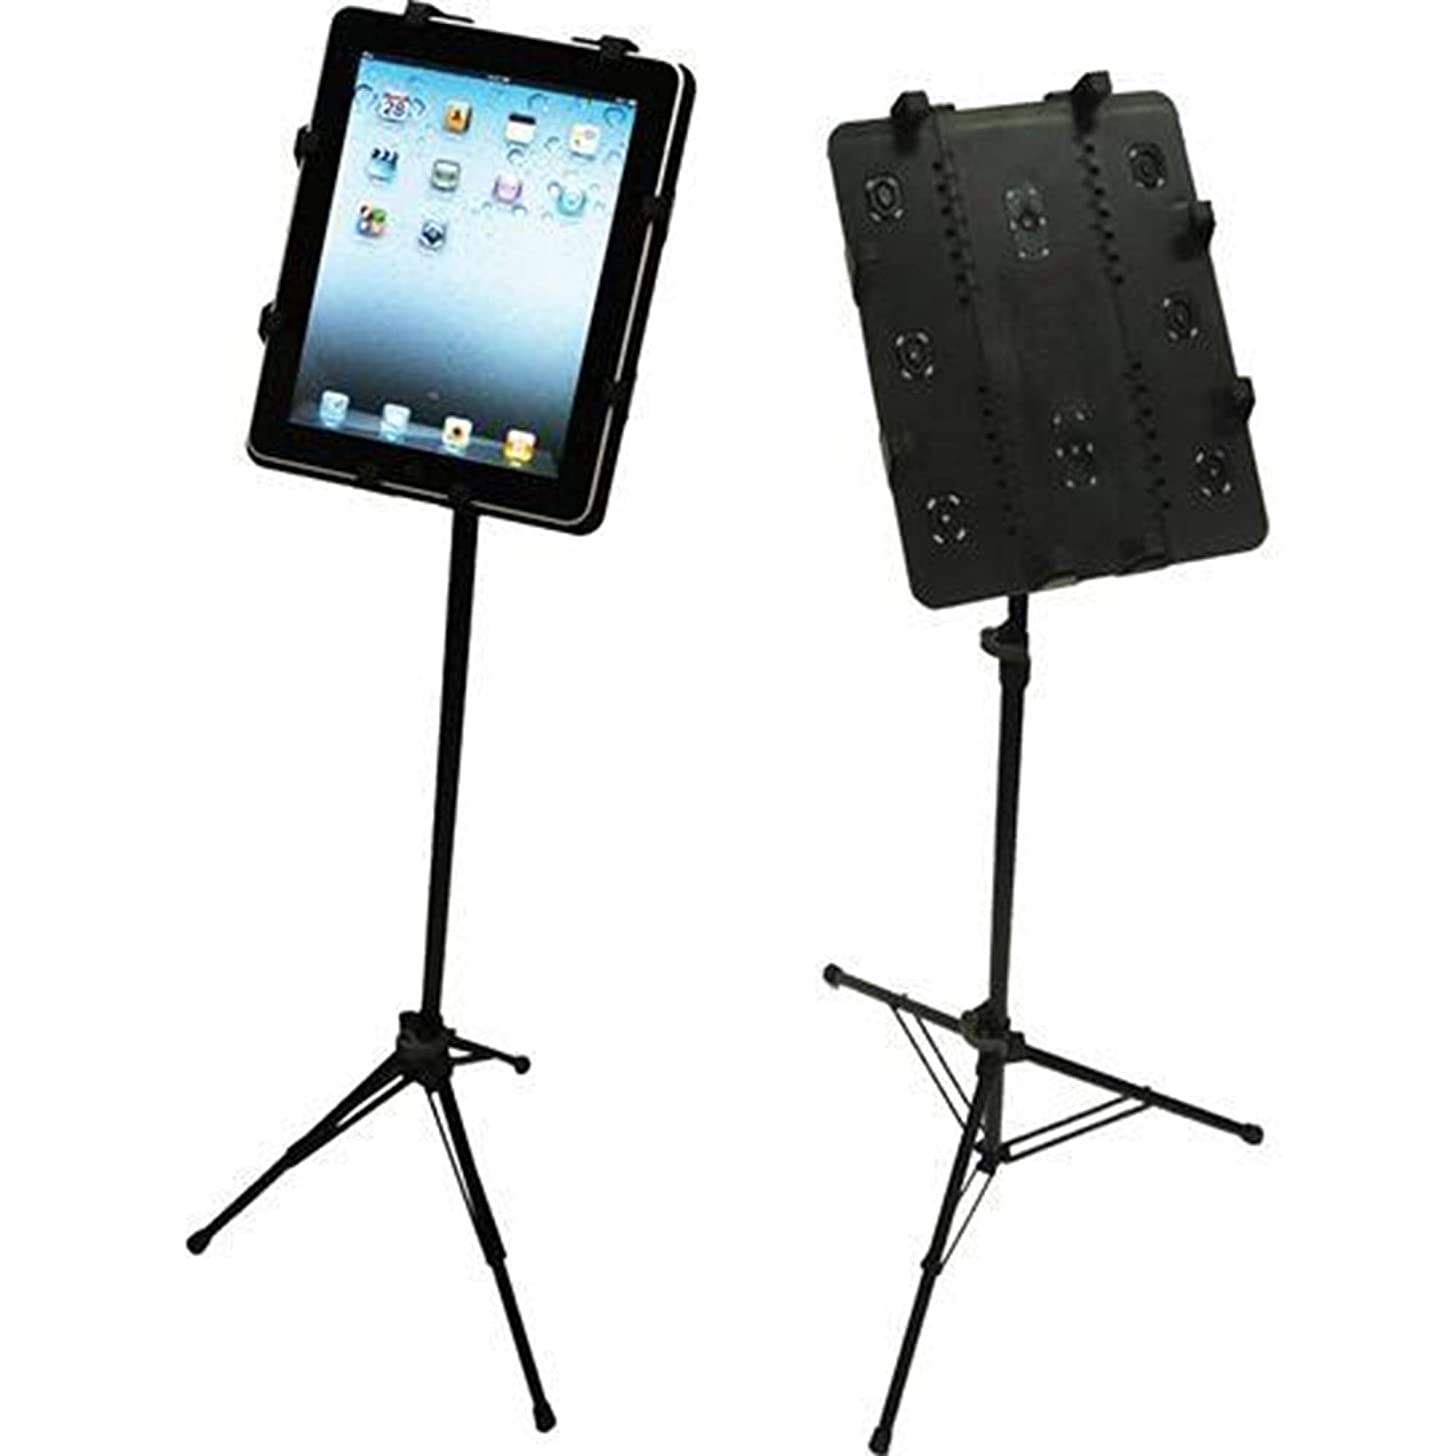 Peak Portable Music Stand for iPad